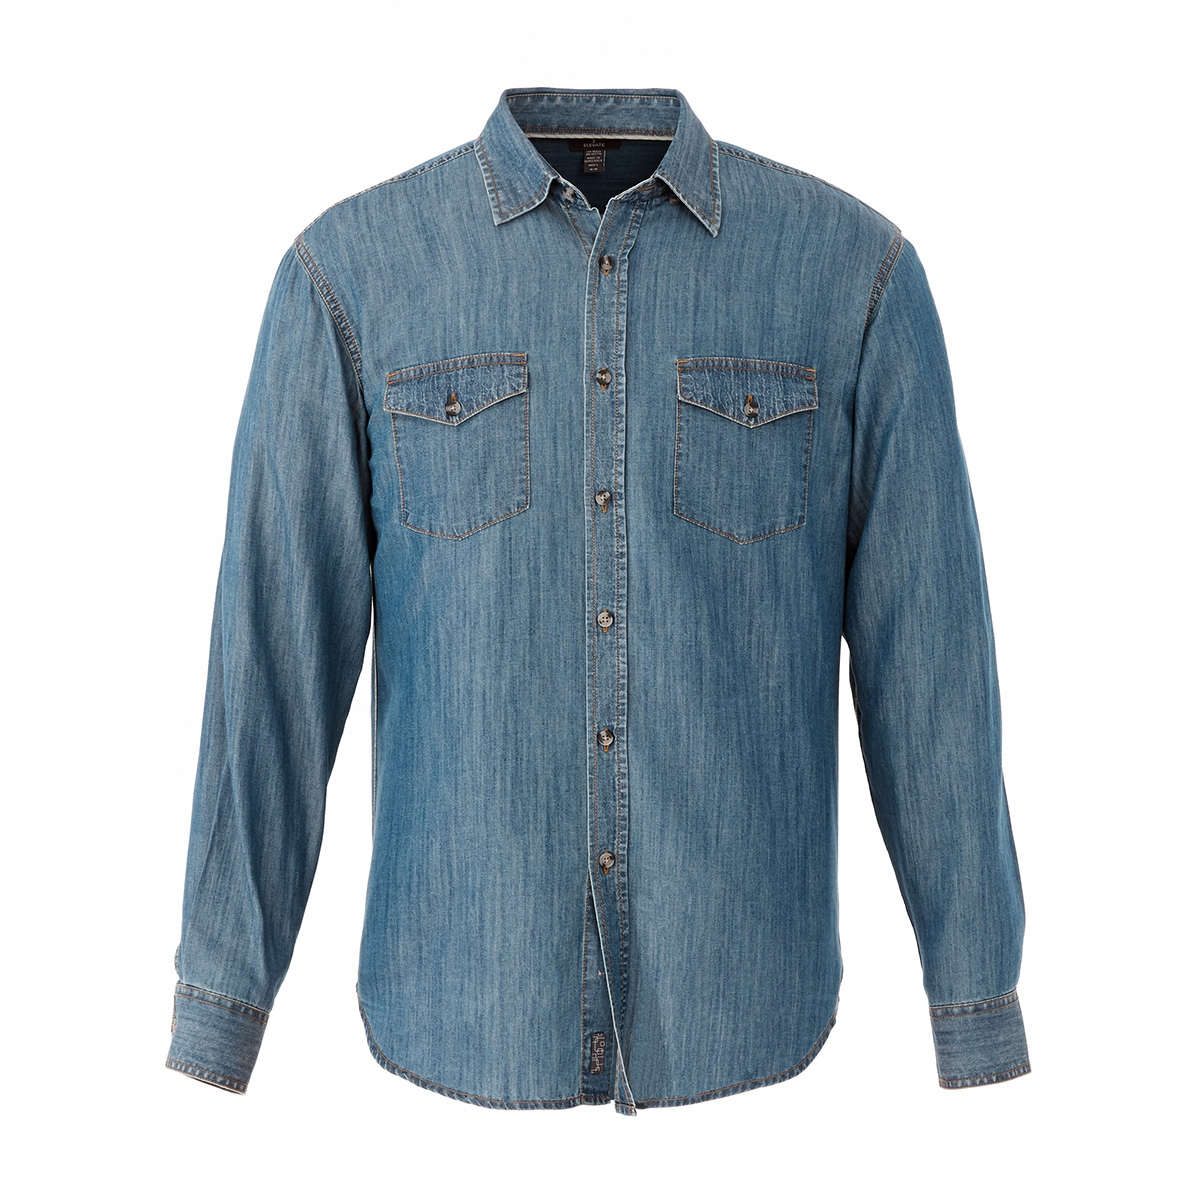 Sloan Long Sleeve Men's Shirt, #17452 - Embroidered